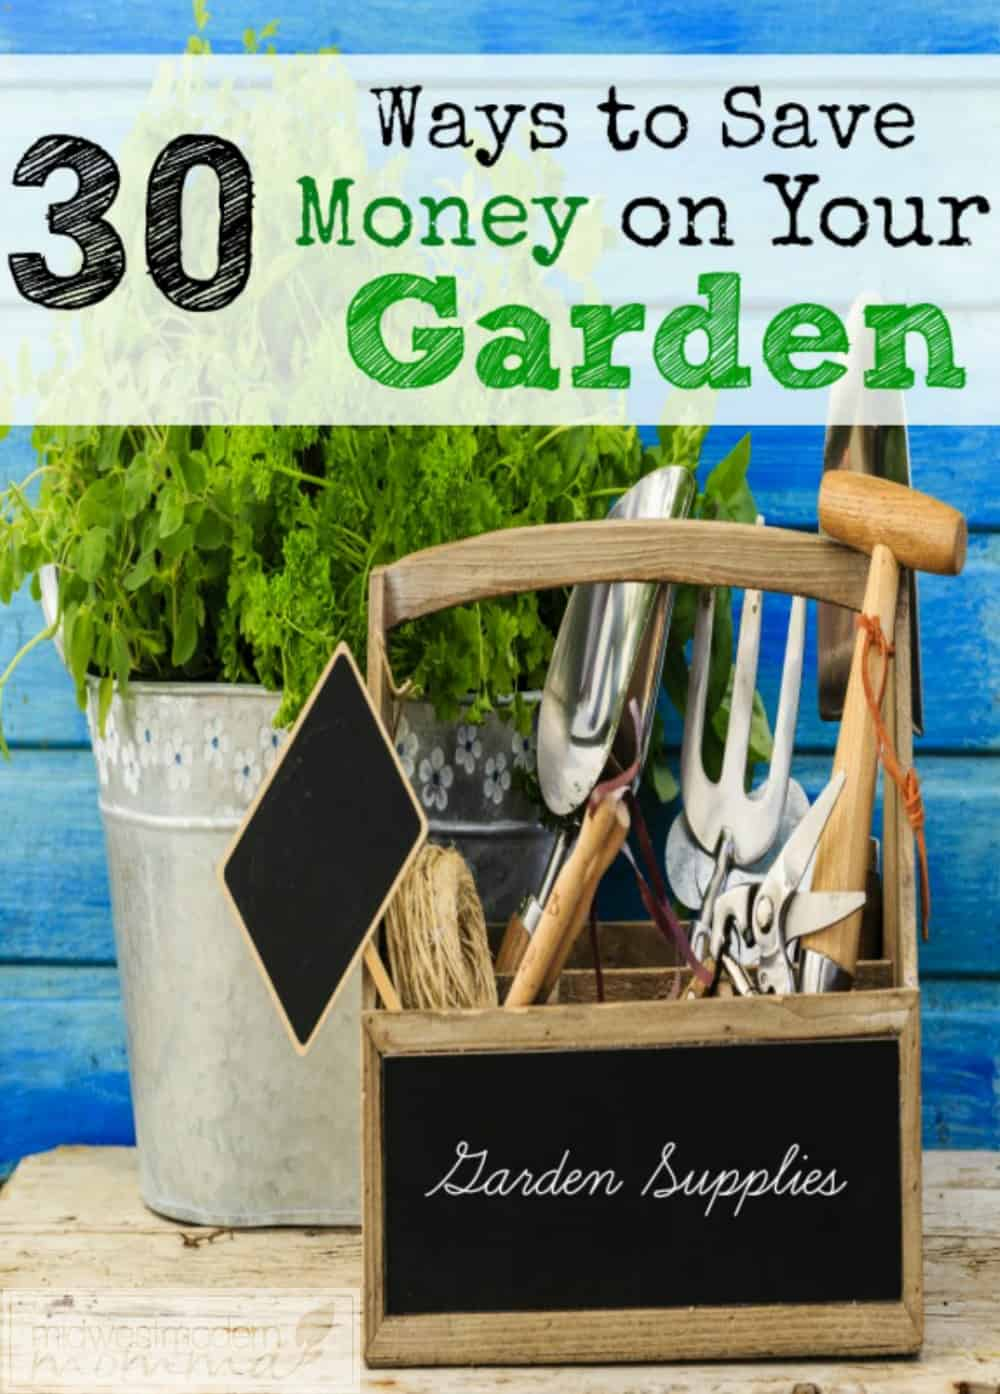 Ways To Save Money On Gardening like this list of 30 Amazing Tips are just the beginning of your savings with a budget-friendly backyard vegetable garden!